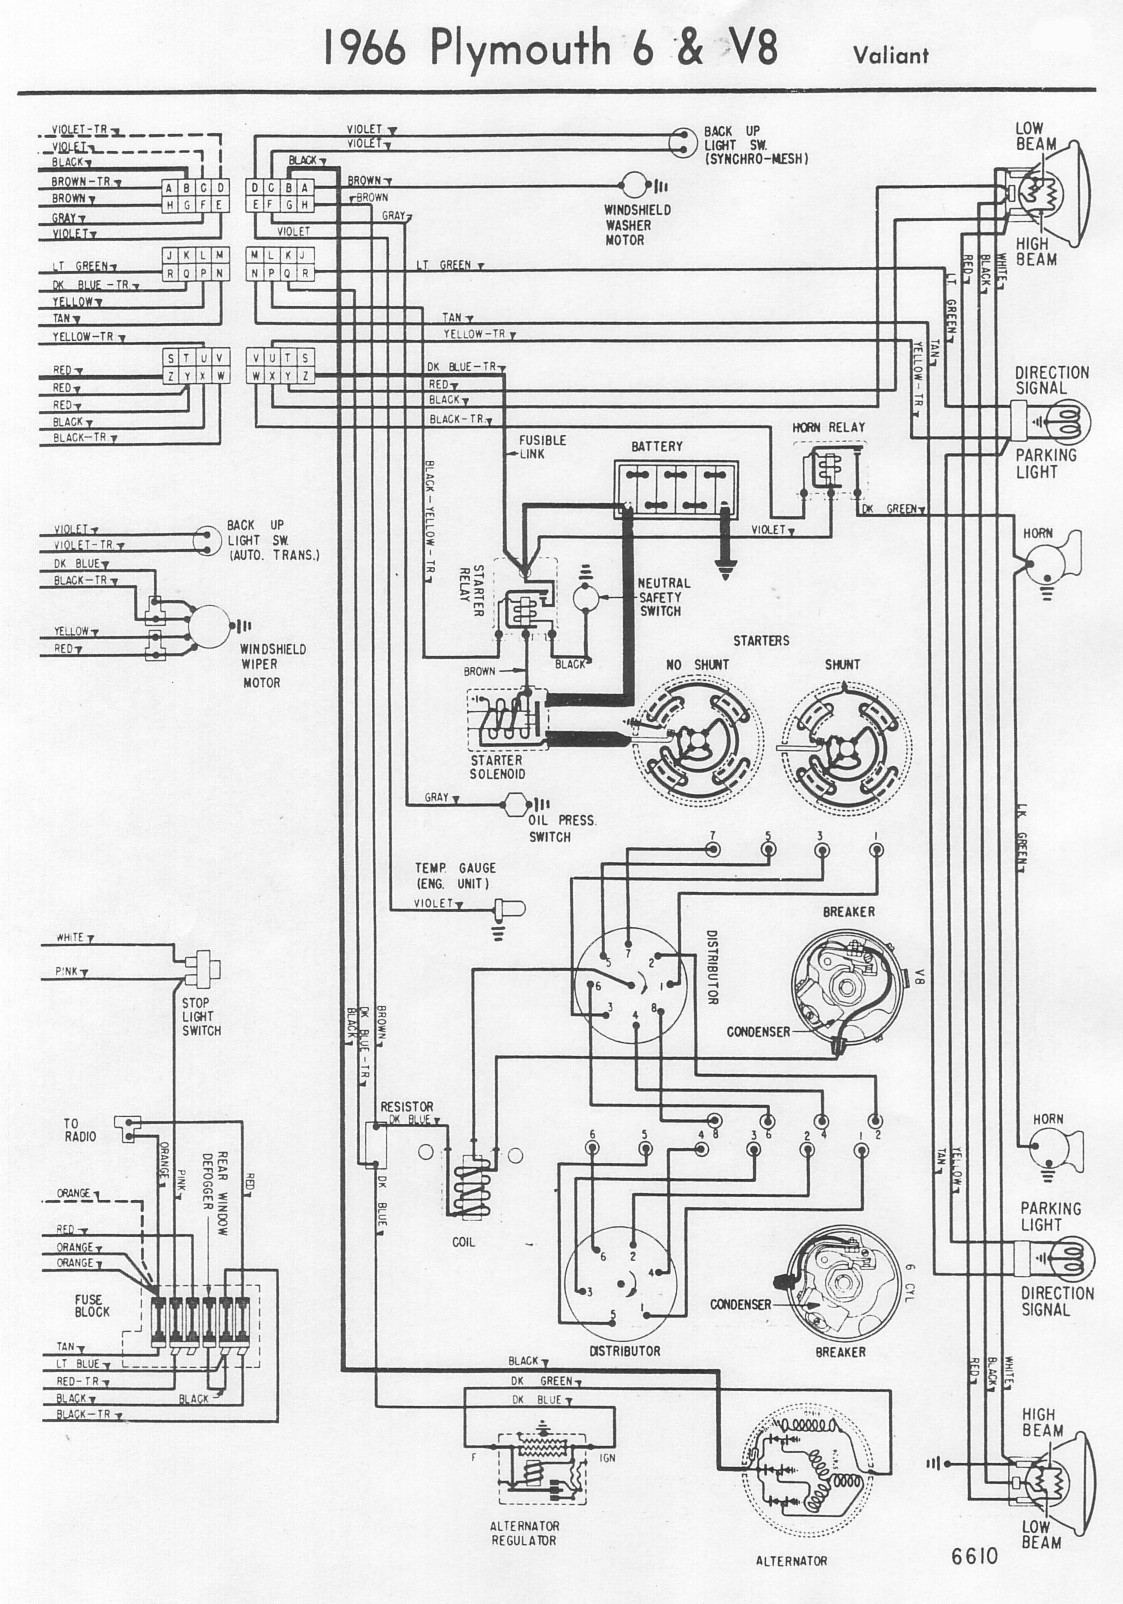 [DIAGRAM_5NL]  DFBCD 68 Plymouth Barracuda Wiring Diagram | Wiring Resources | 1966 Chrysler 300 Electric Window Wiring Diagram |  | Wiring Resources